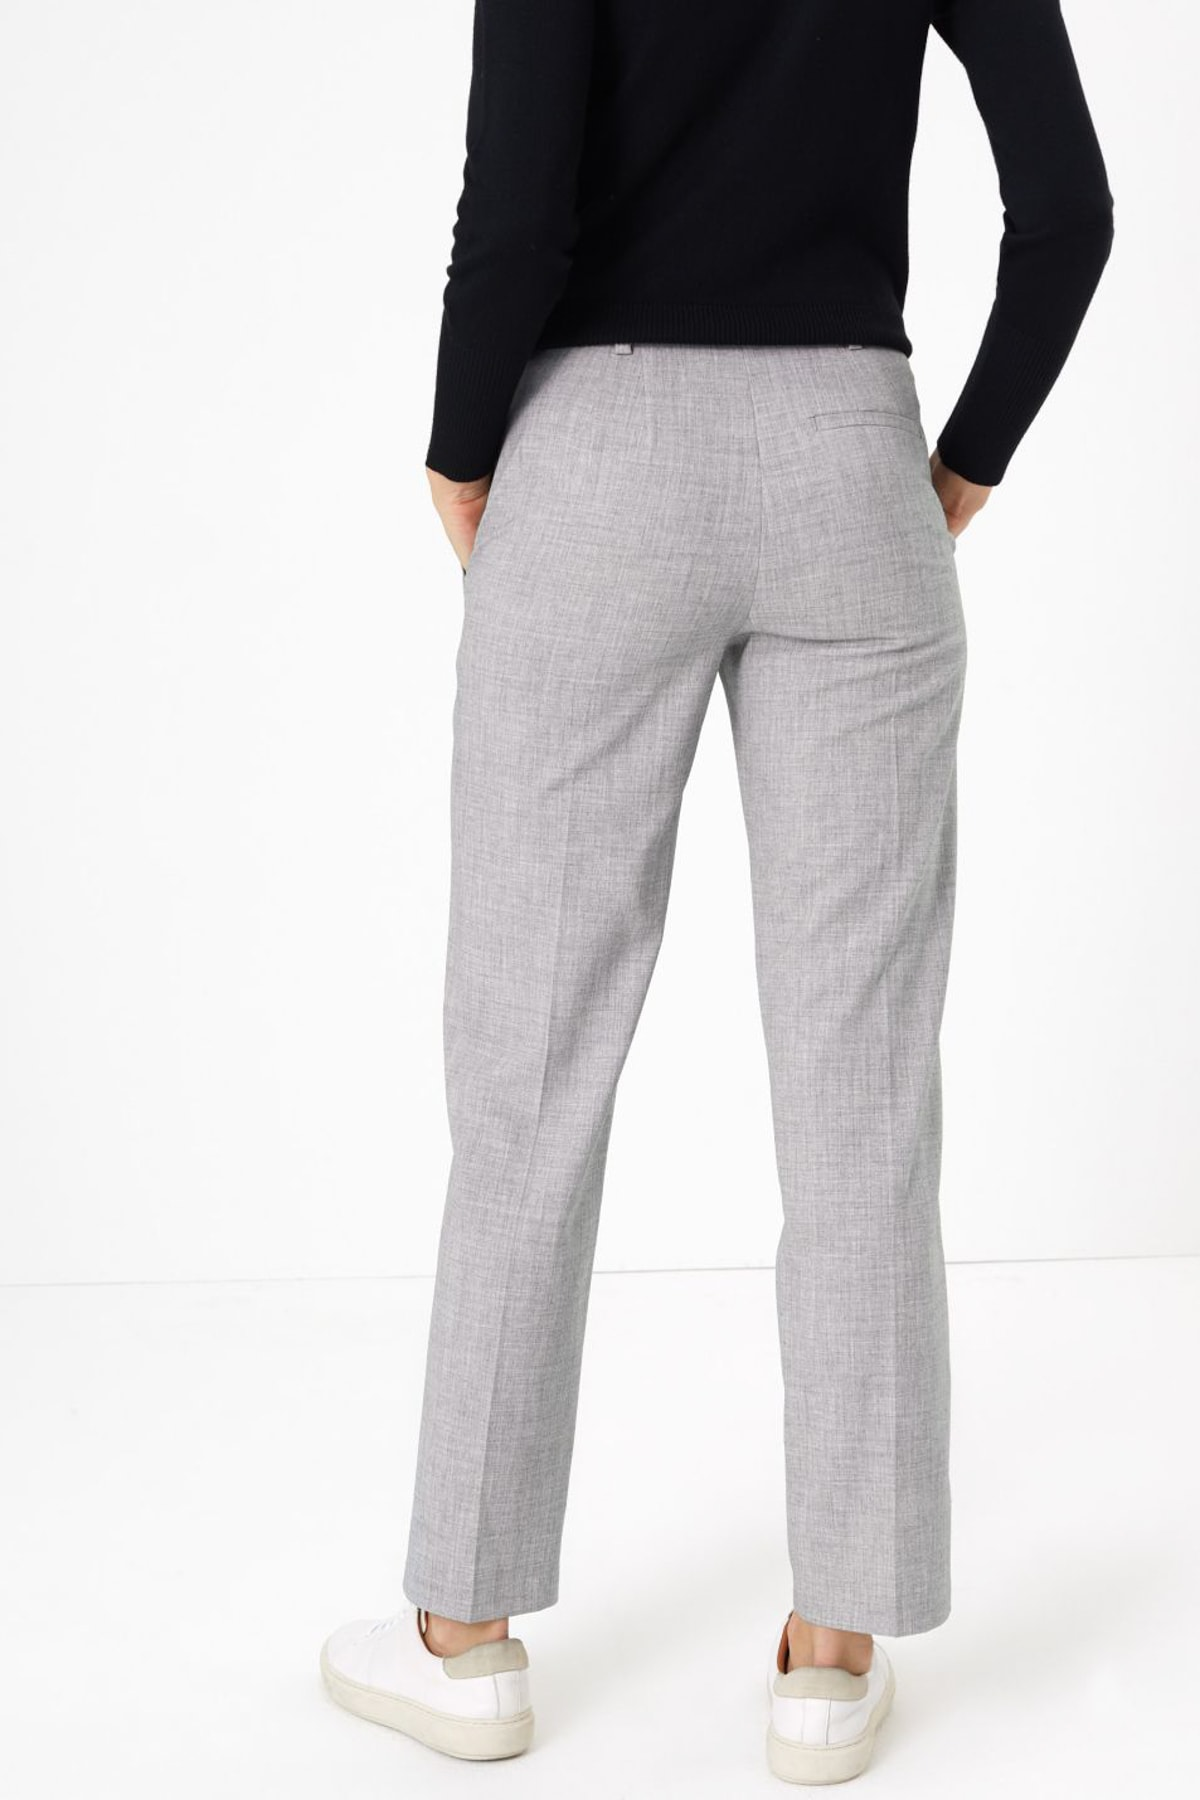 Marks & Spencer Kadın Gri Straight Leg Pantolon T59005977 2